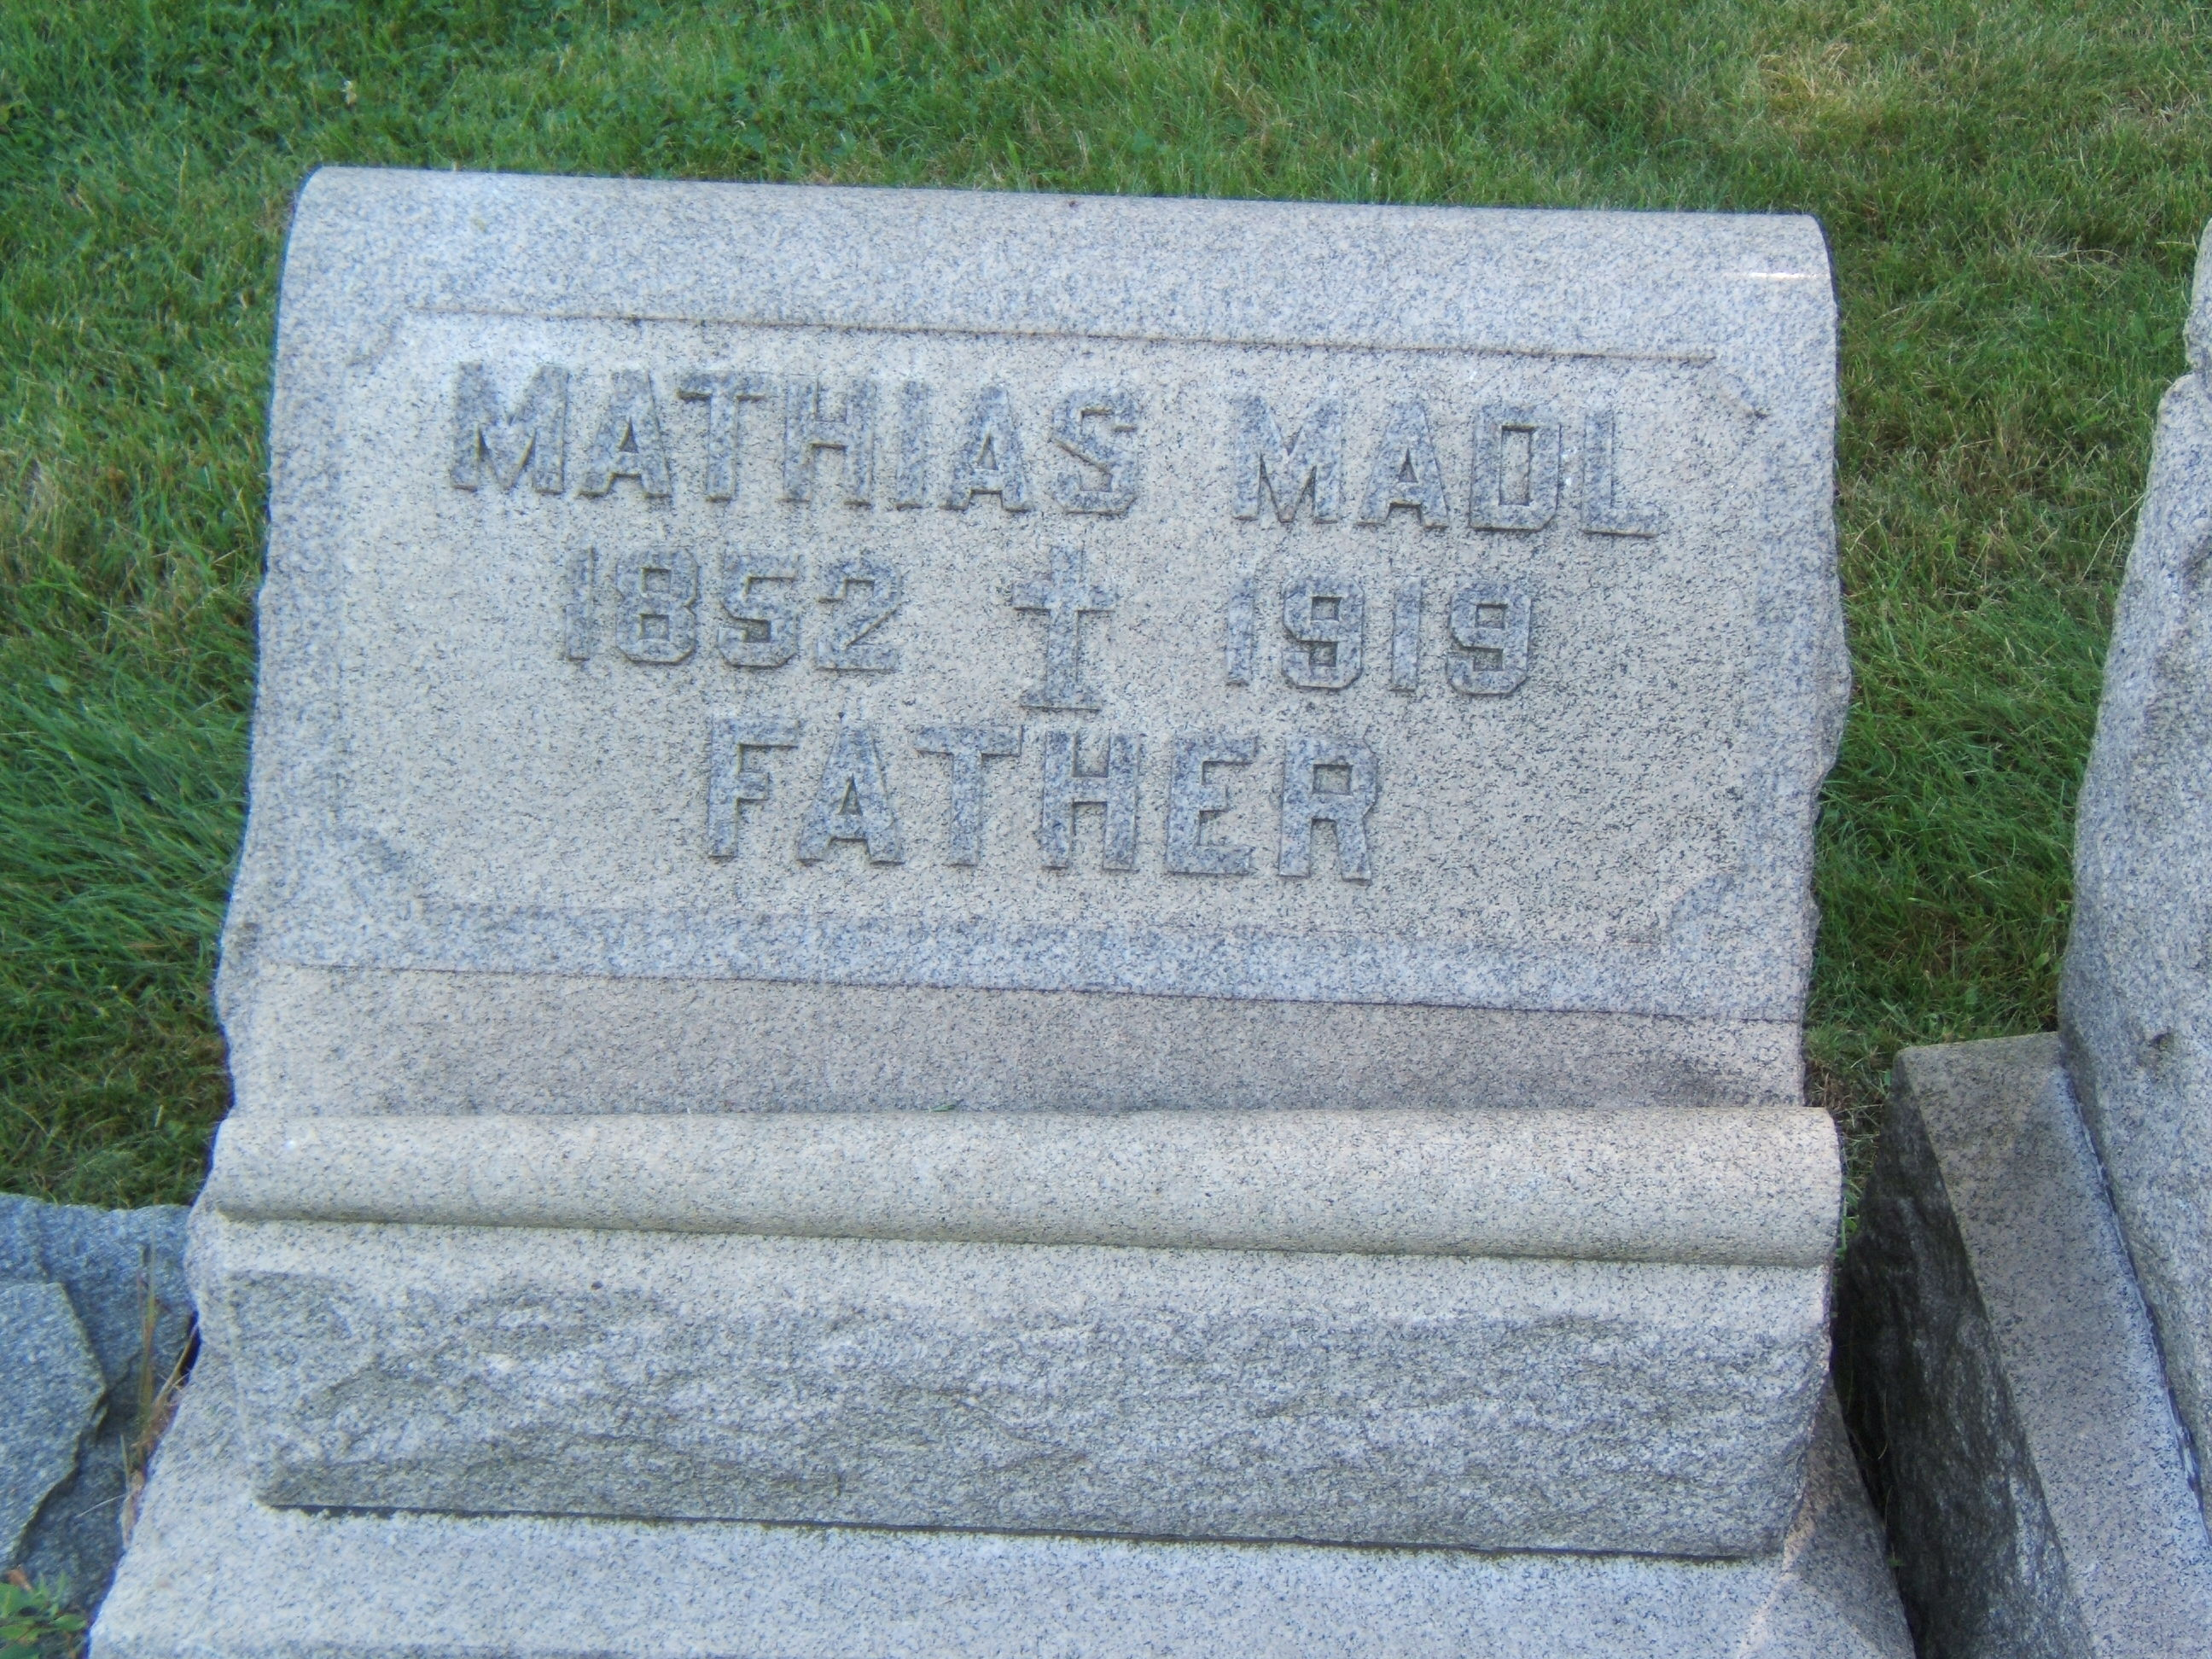 Mathias Midle